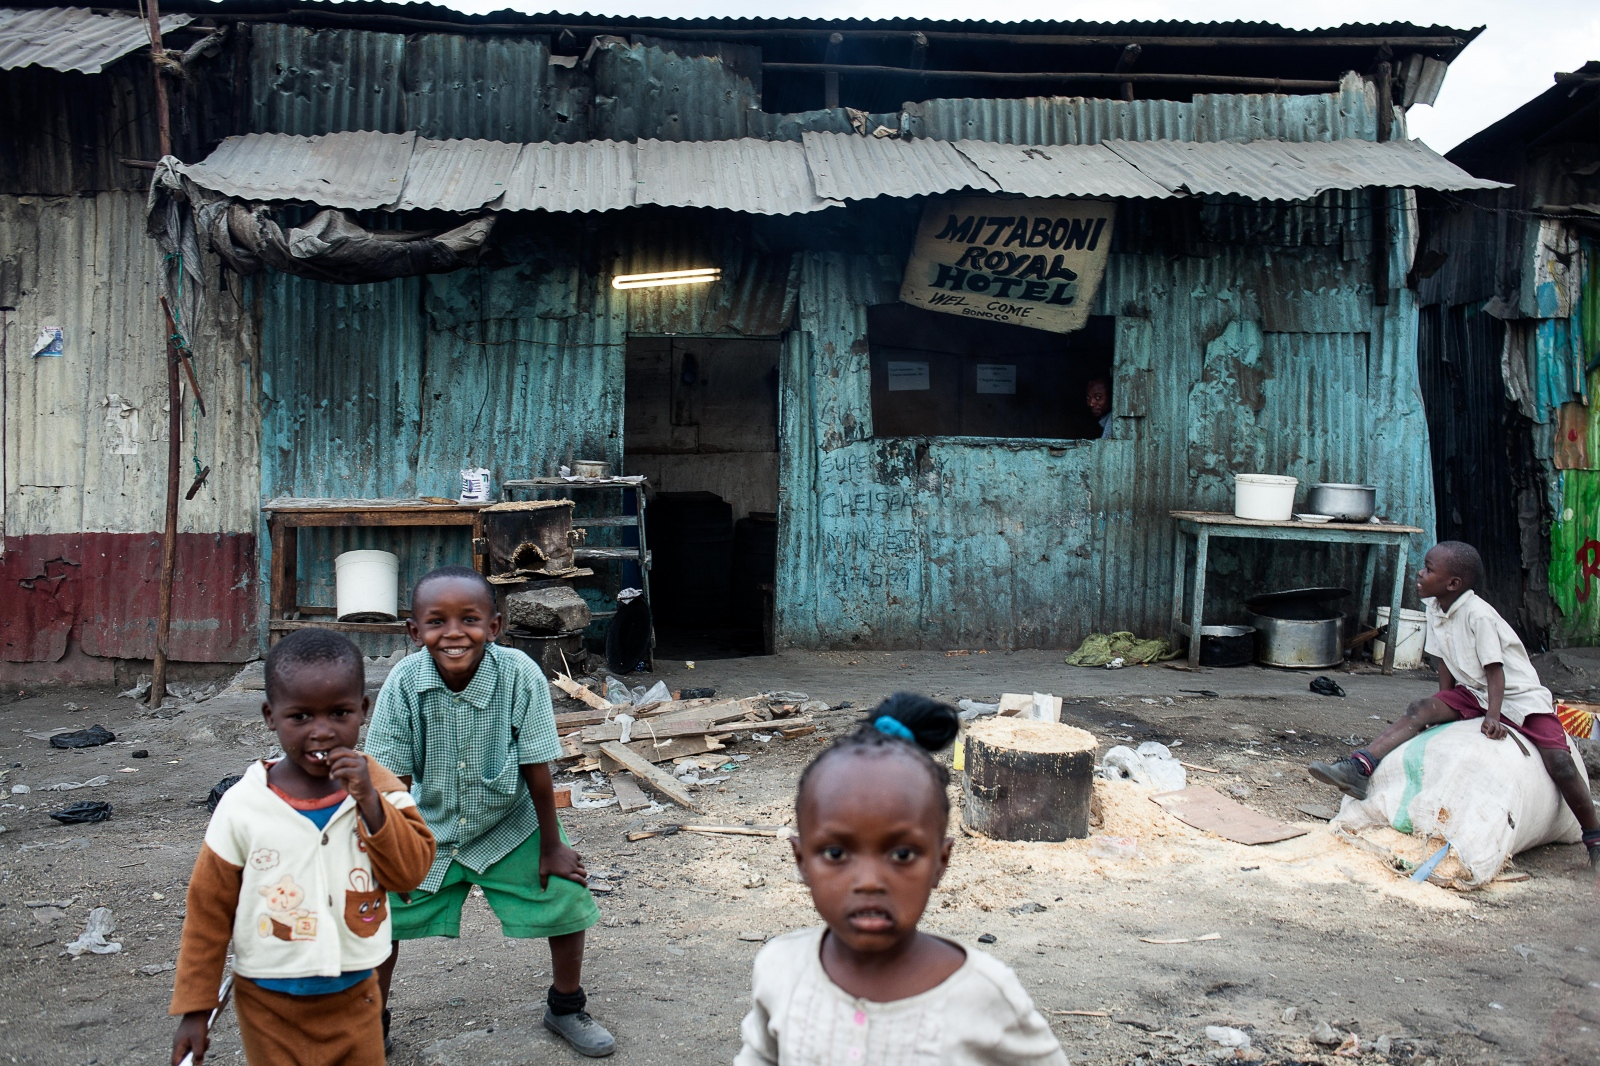 Sinai Slum, Nairobi, KENYA, October 29, 2013: Children play in front of a hotel. Many children from Nairobi's townships do not attend school.